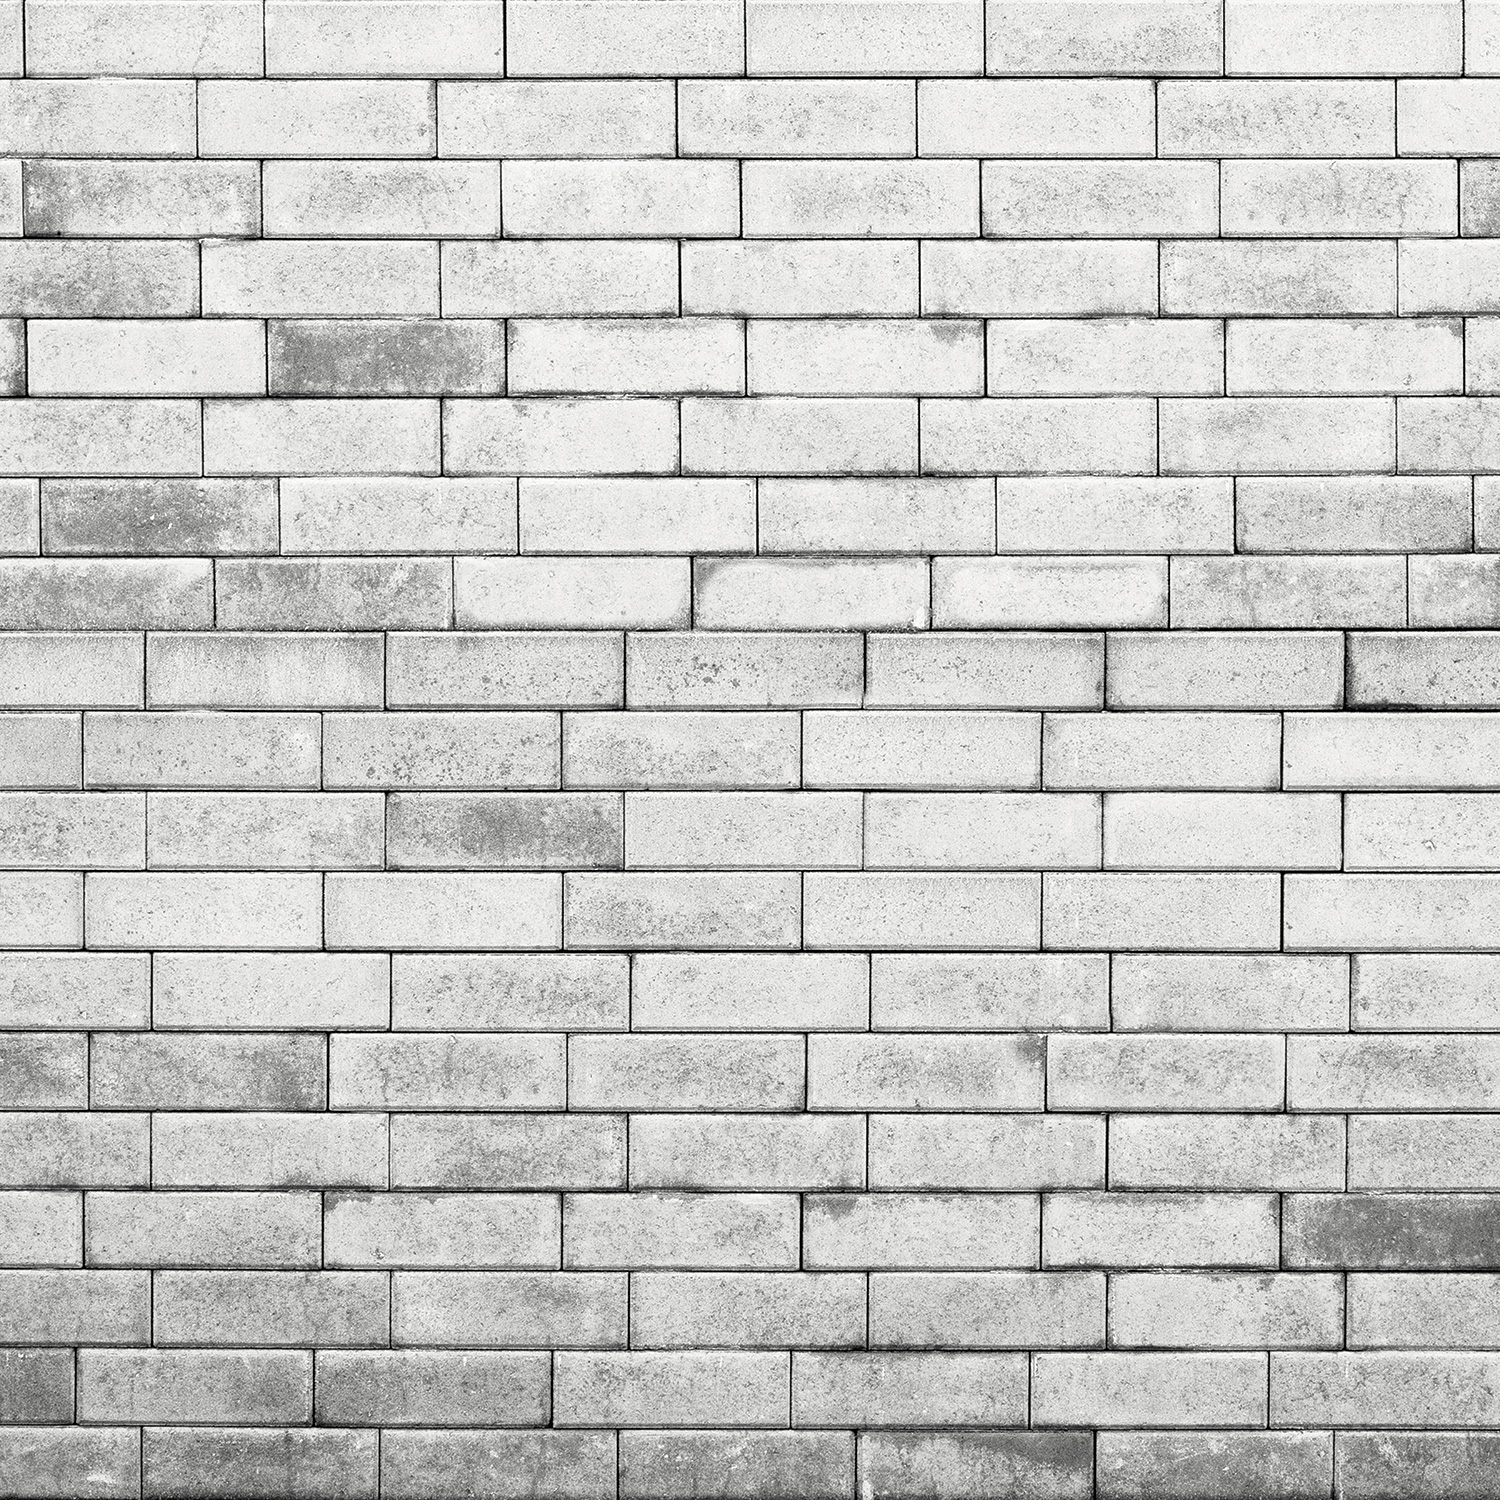 Brick Wall Matte Vinyl Backdrop (3.5' x 3.5') - Gray